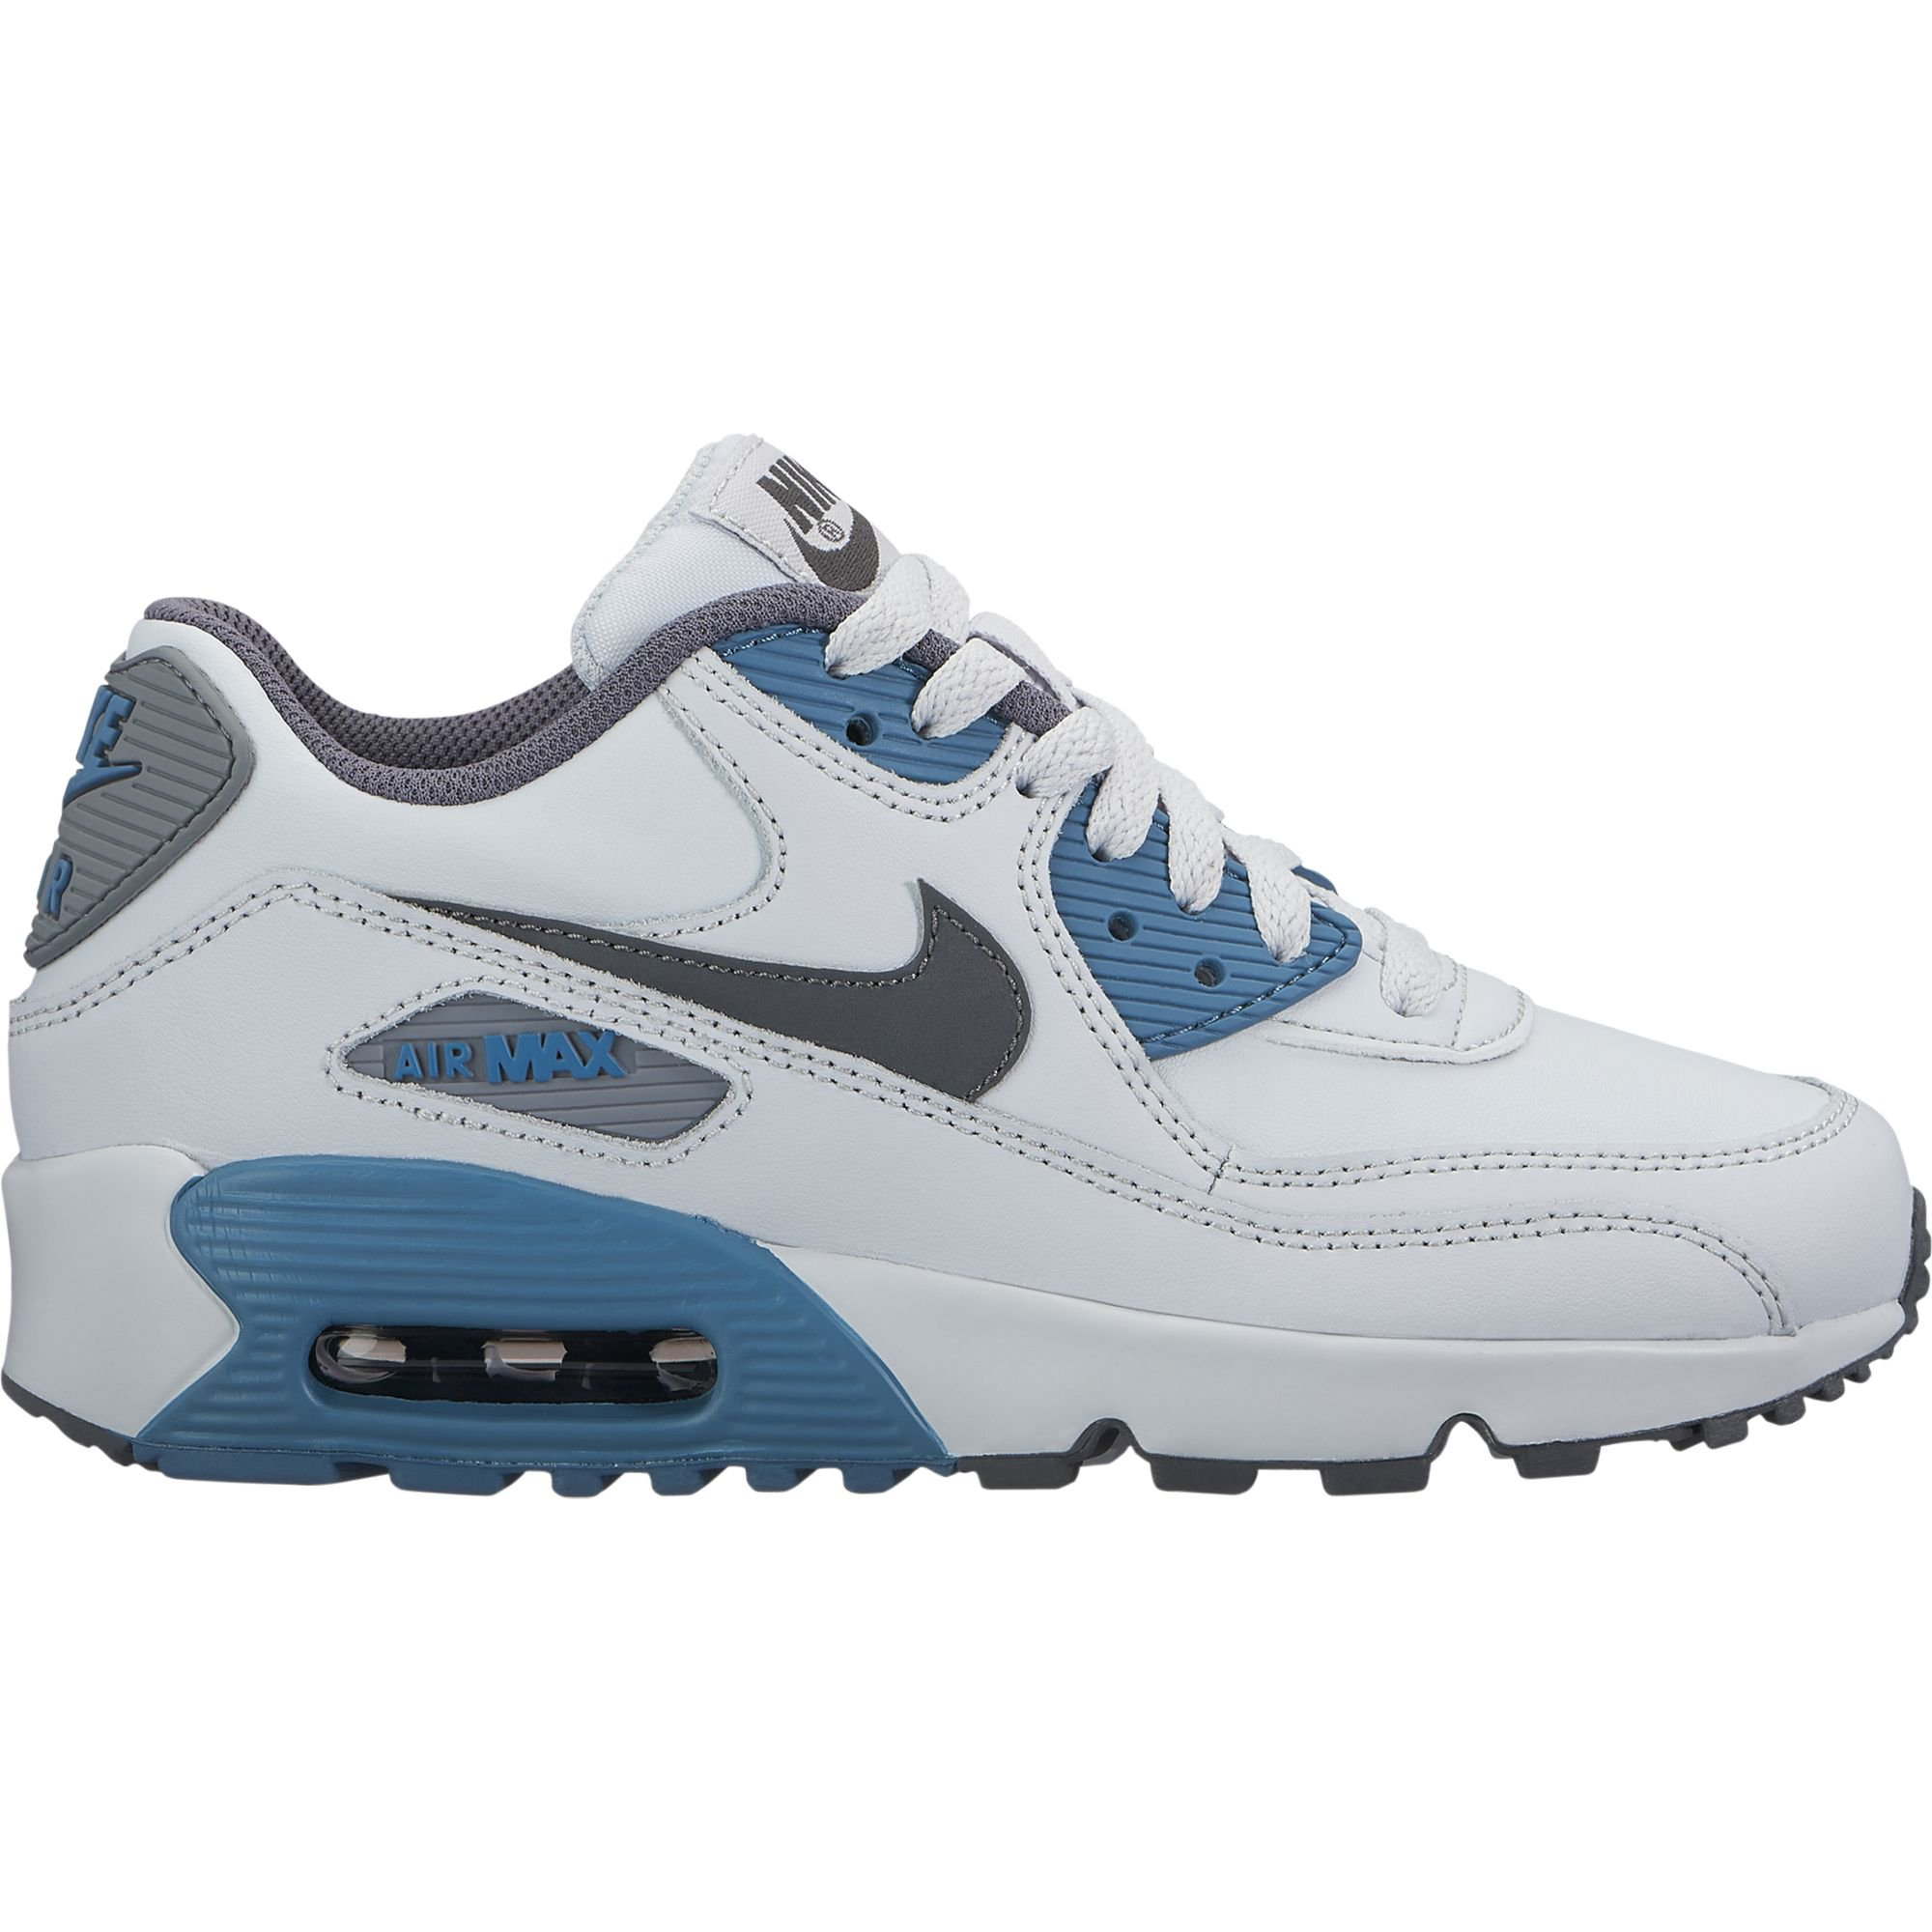 949d78f497 Galleon - Nike Boys' Air Max 90 Leather (GS) Shoe, Pure Platinum/Cool Grey-Noise  Aqua, 6Y